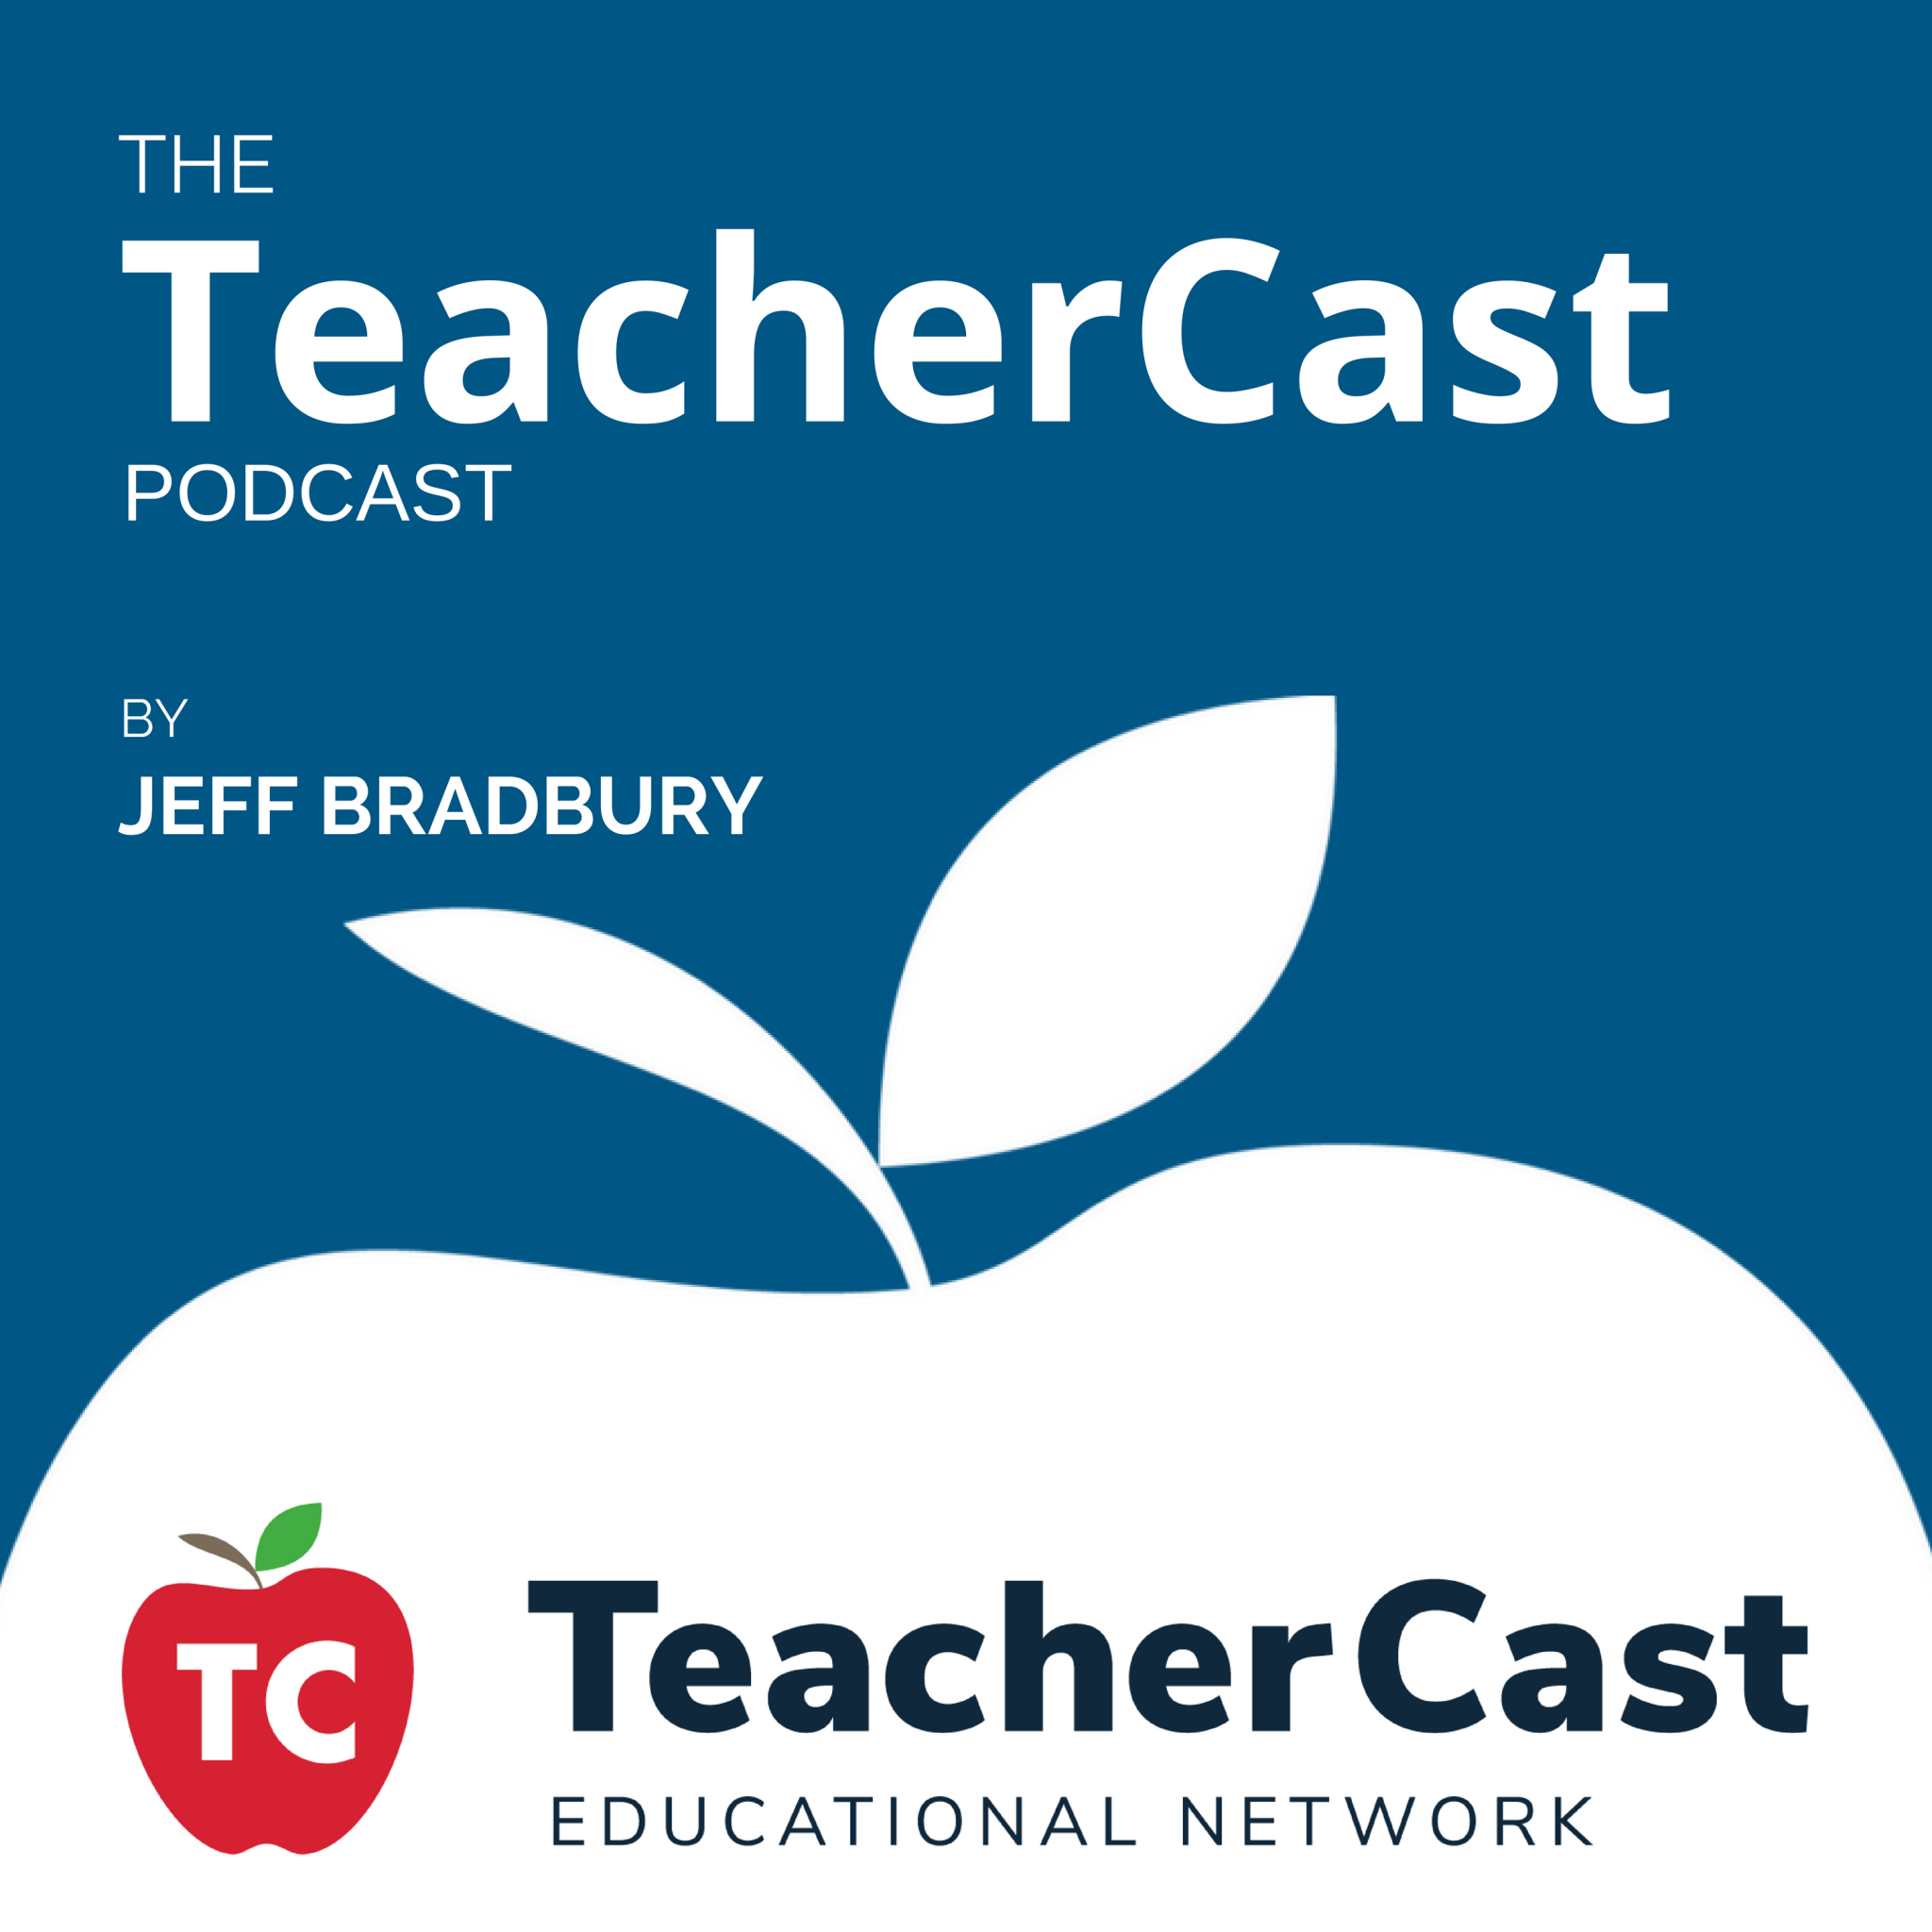 The TeacherCast Podcast Master iTunes Square